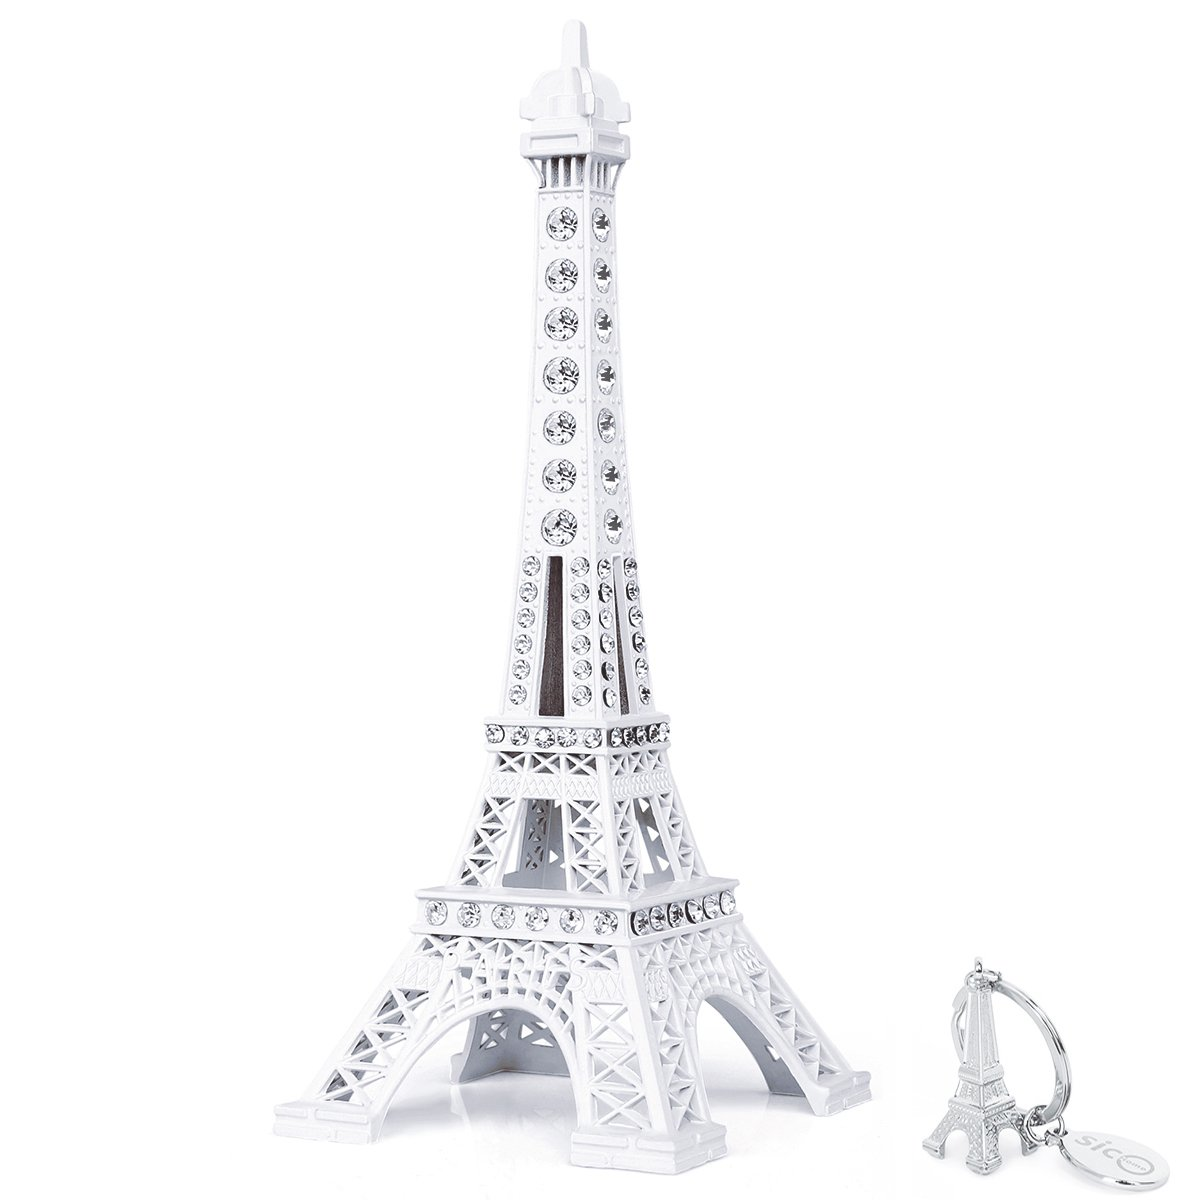 SiCoHome Eiffel Tower Cake Topper 7.0inch white with Blings Figurine Replica Centerpiece Room Table Eiffel Tower Decor French Souvenir Gift From Paris, France, for Gifts, Party And House Decoration